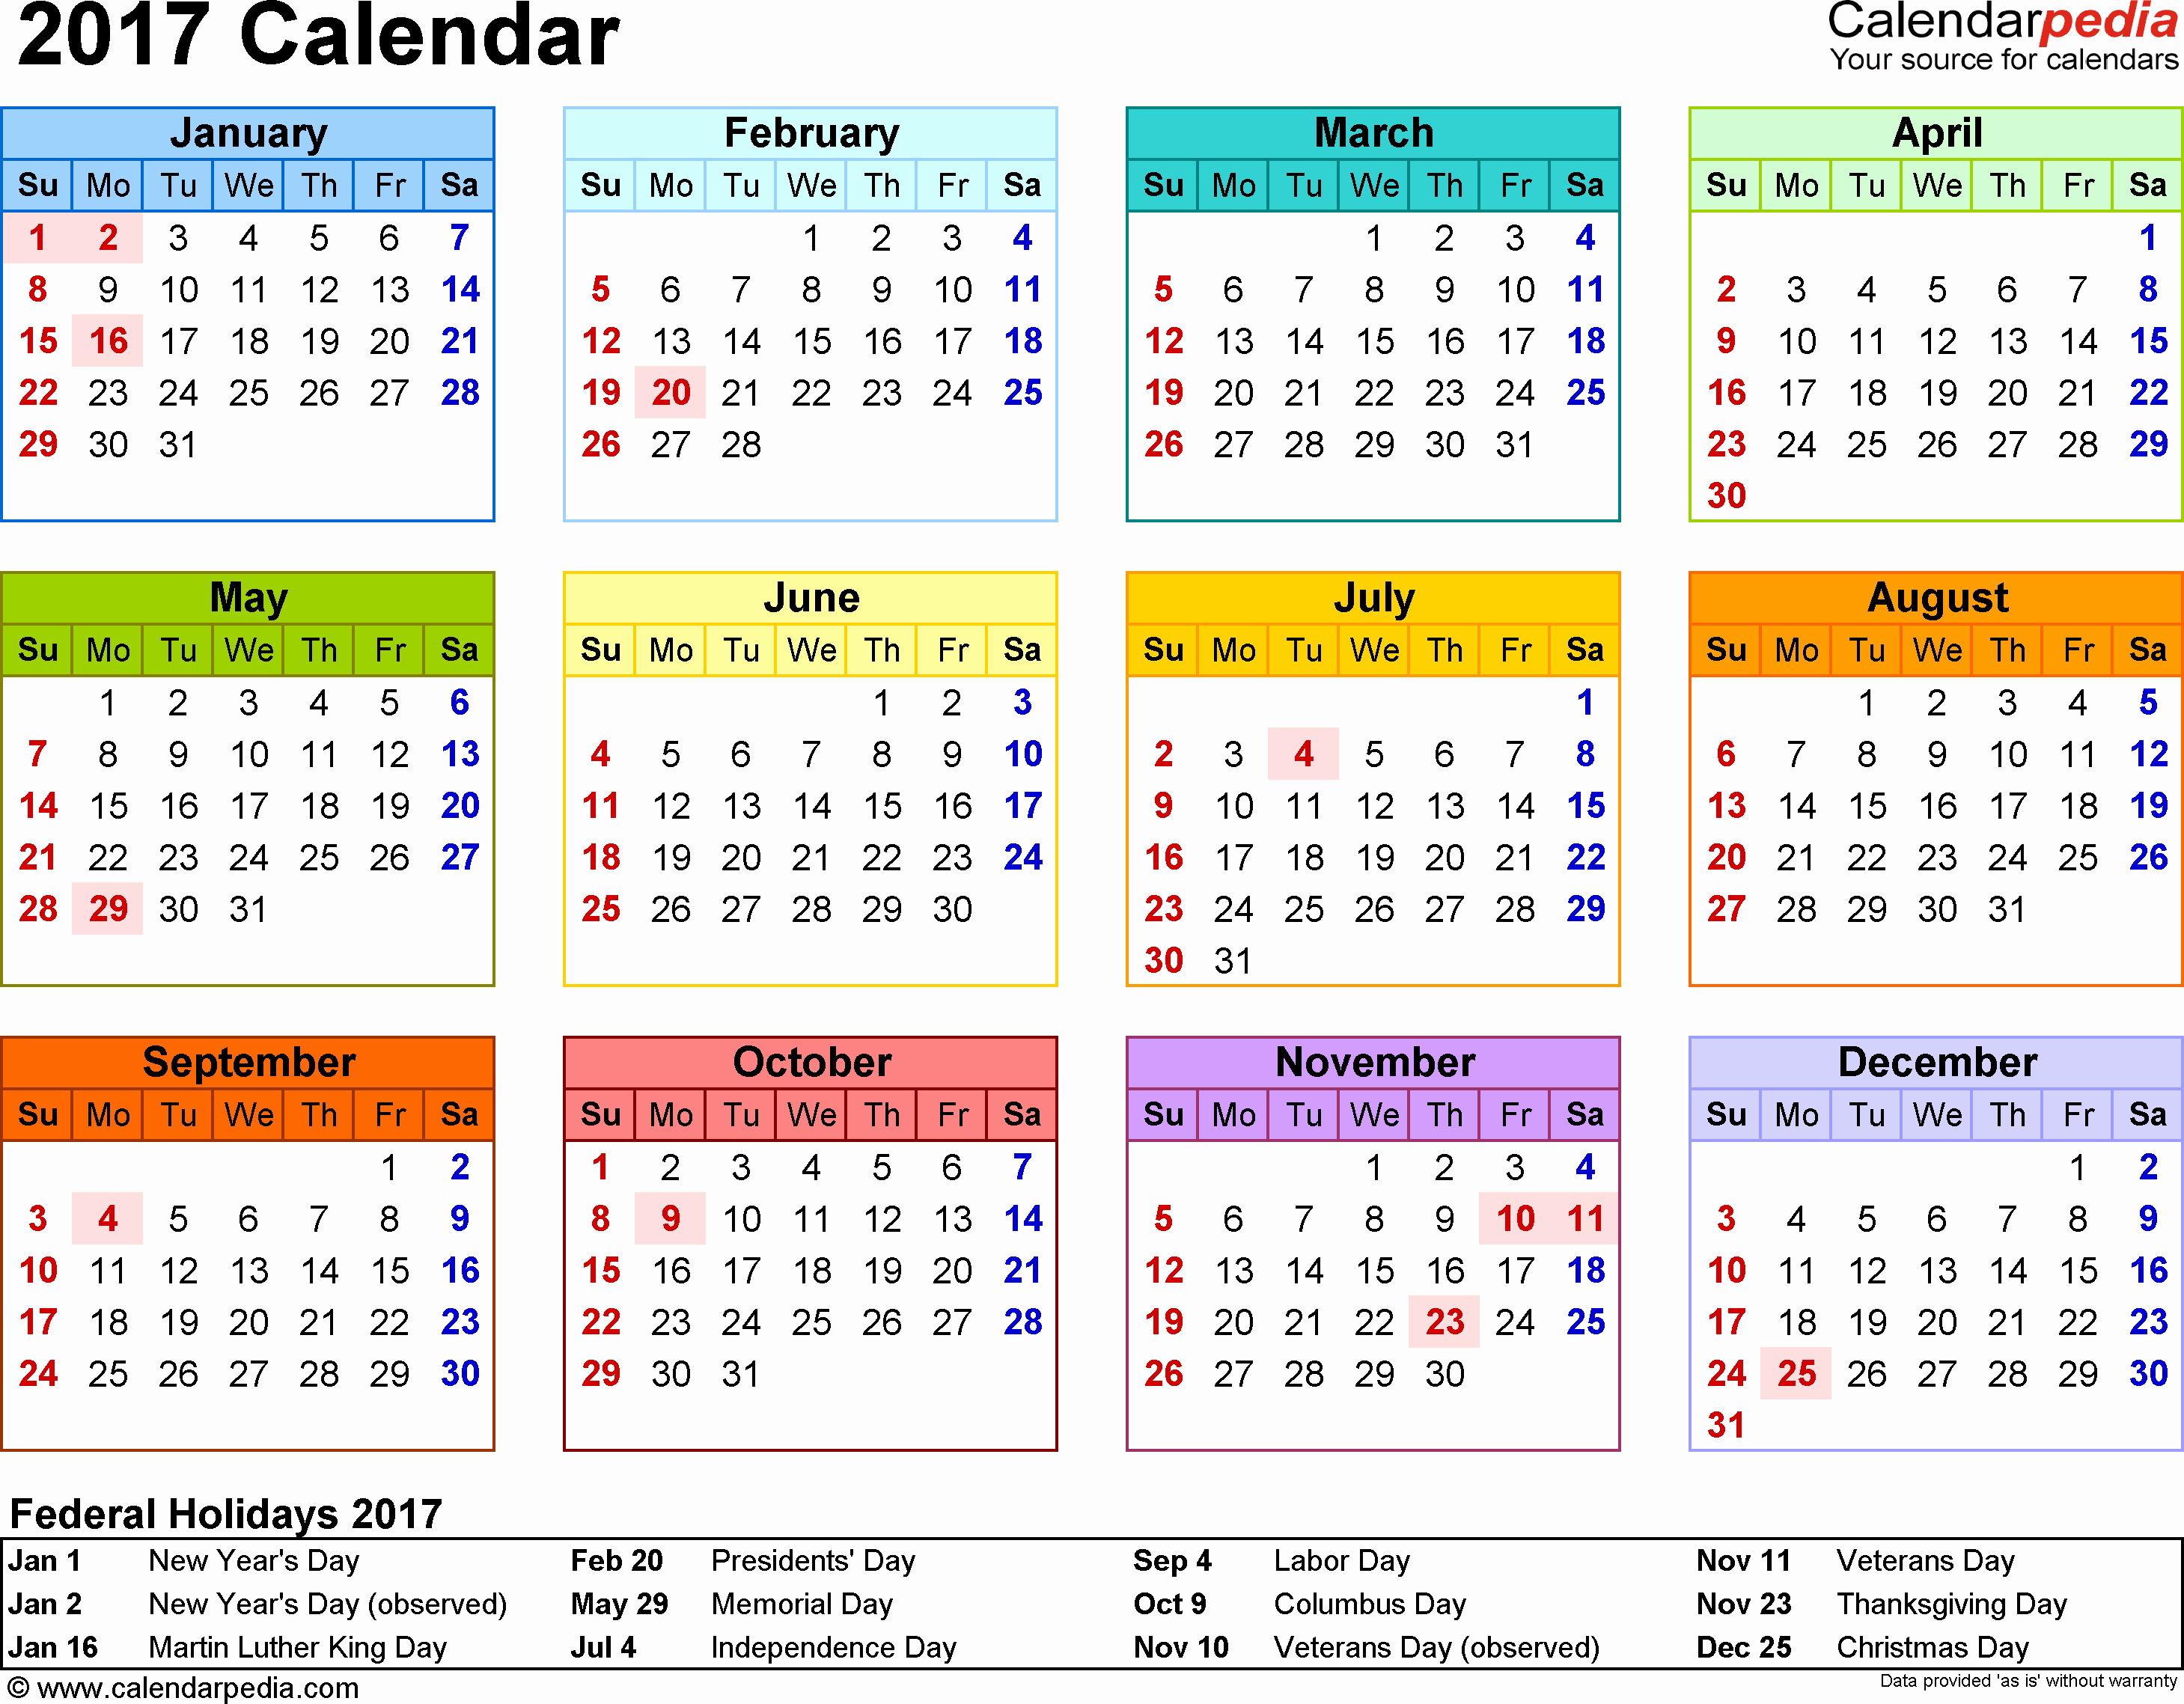 Calendar 2017 Template with Holidays Best Of Template 8 2017 Calendar for Word Year at A Glance 1